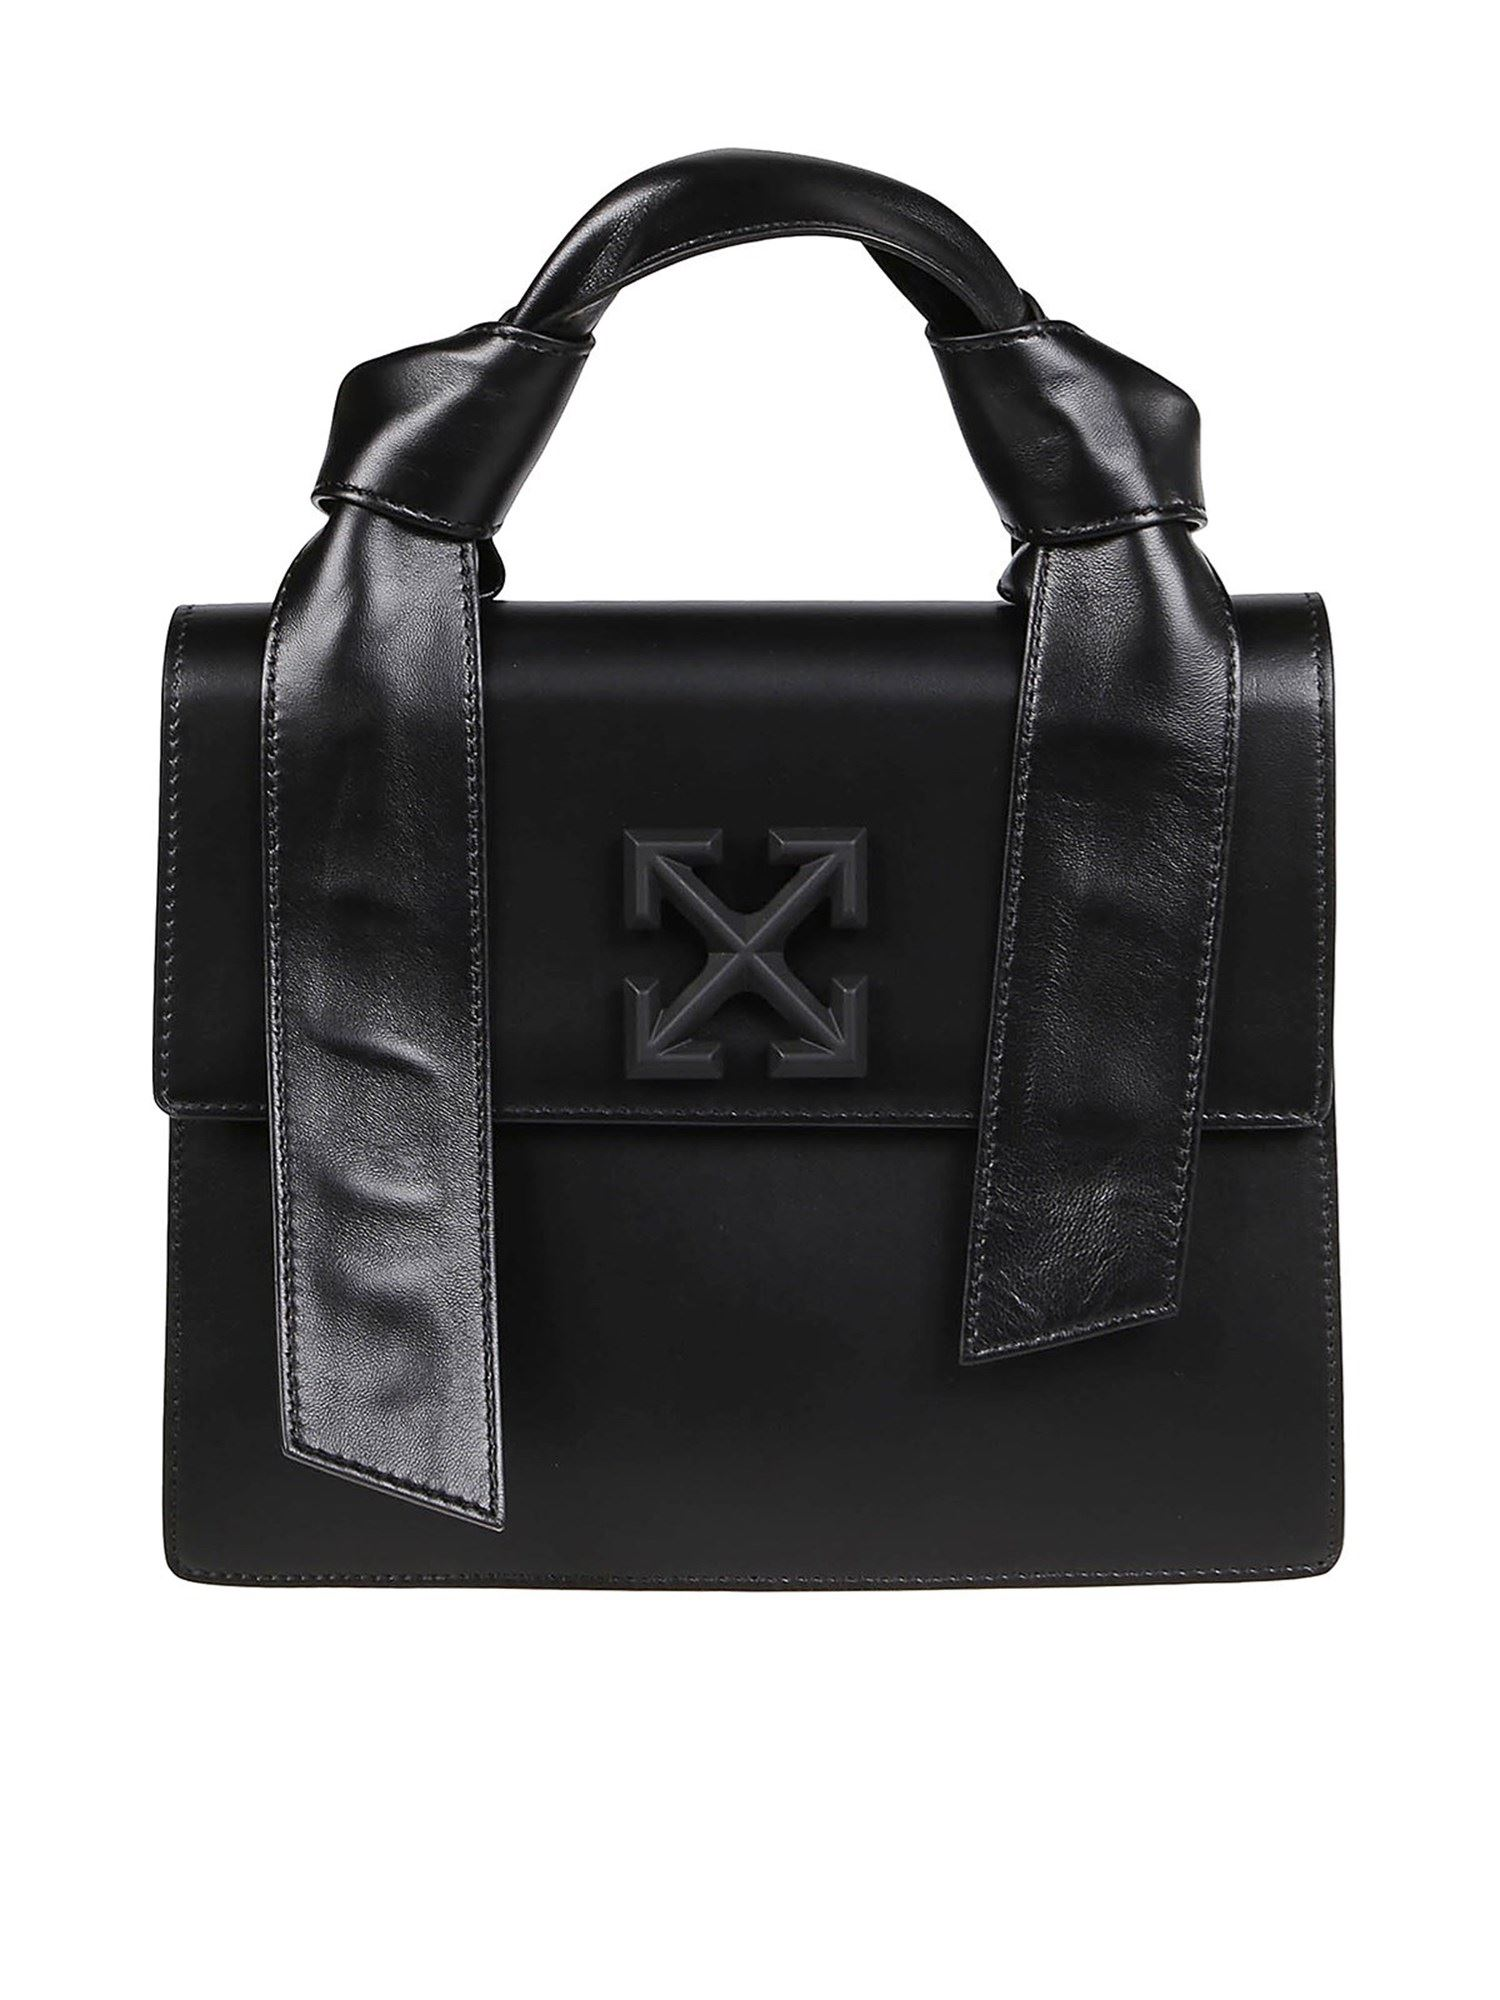 Off-White Leathers NEW JITNEY 2.8 BAG IN BLACK